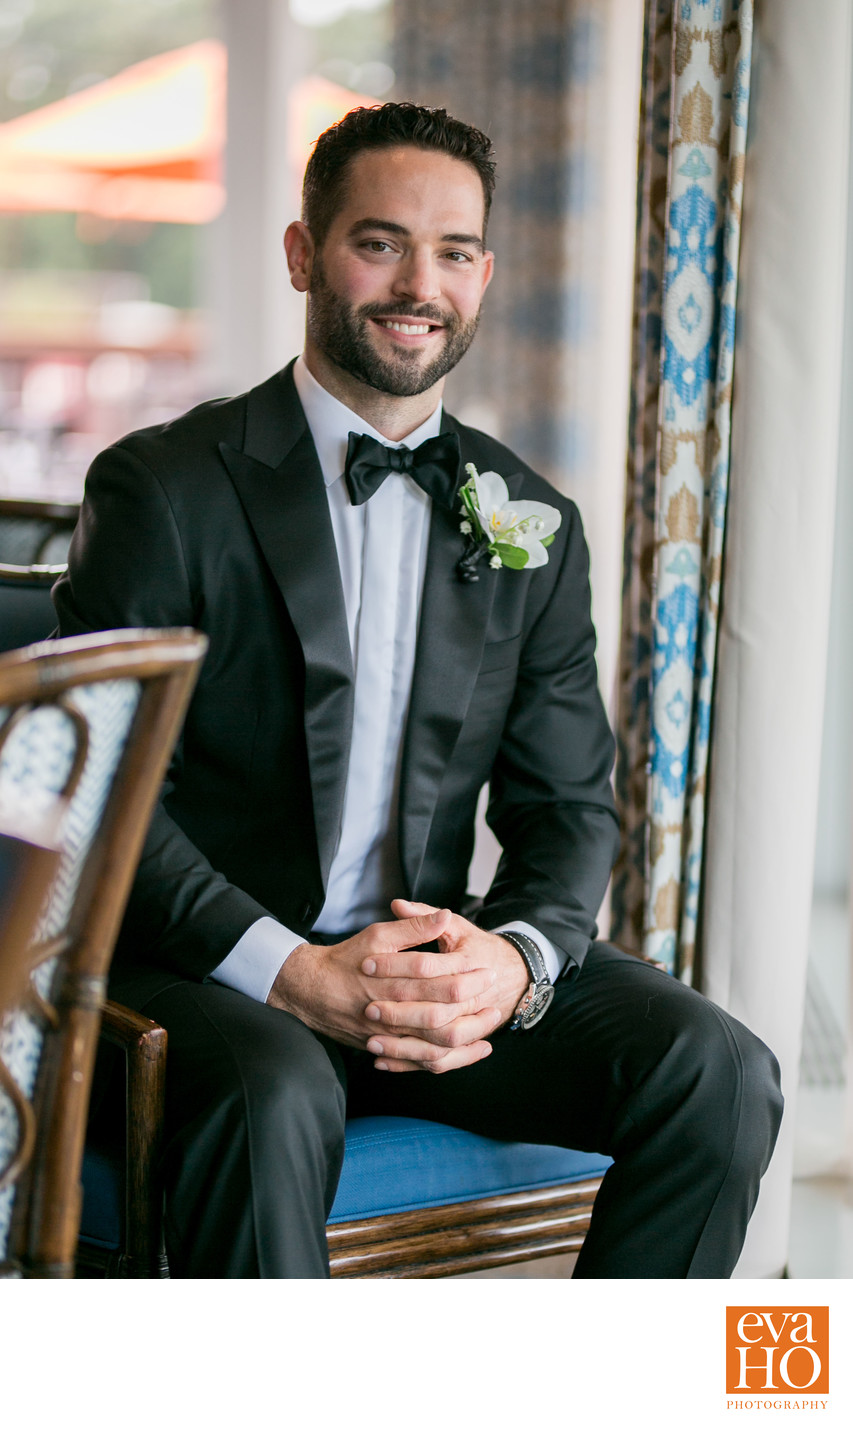 Brandon Bollig on His Wedding Day